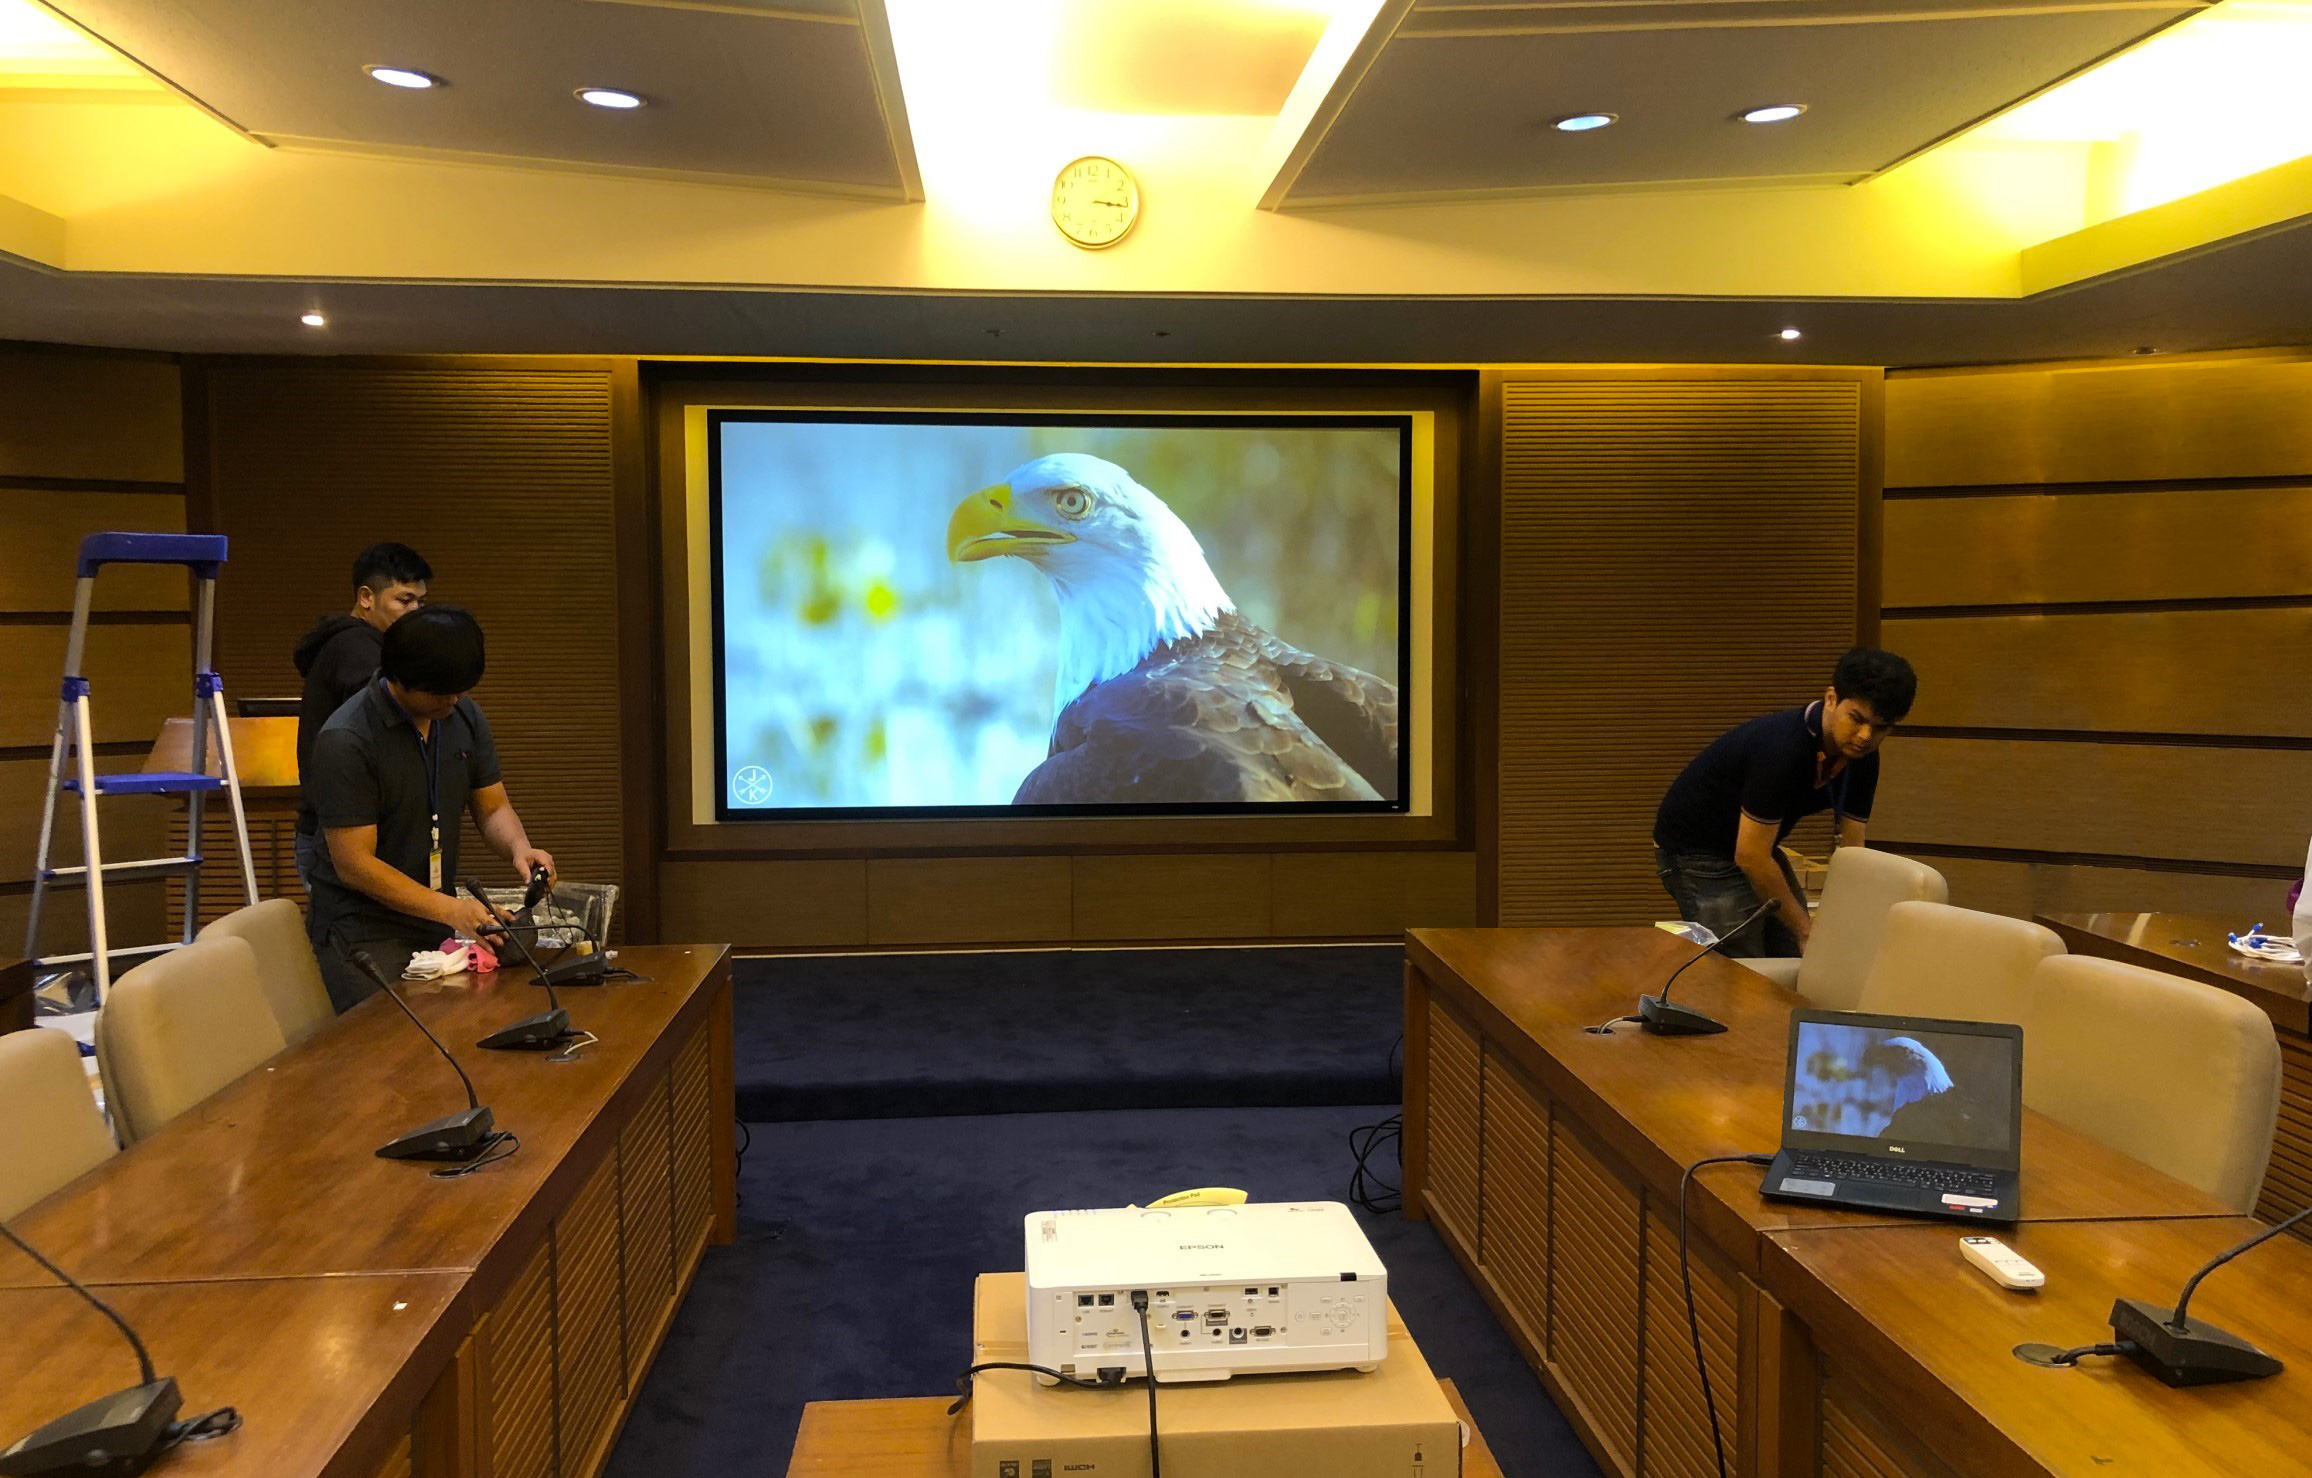 dnp Infinity 130inch at government Thailand meeting room